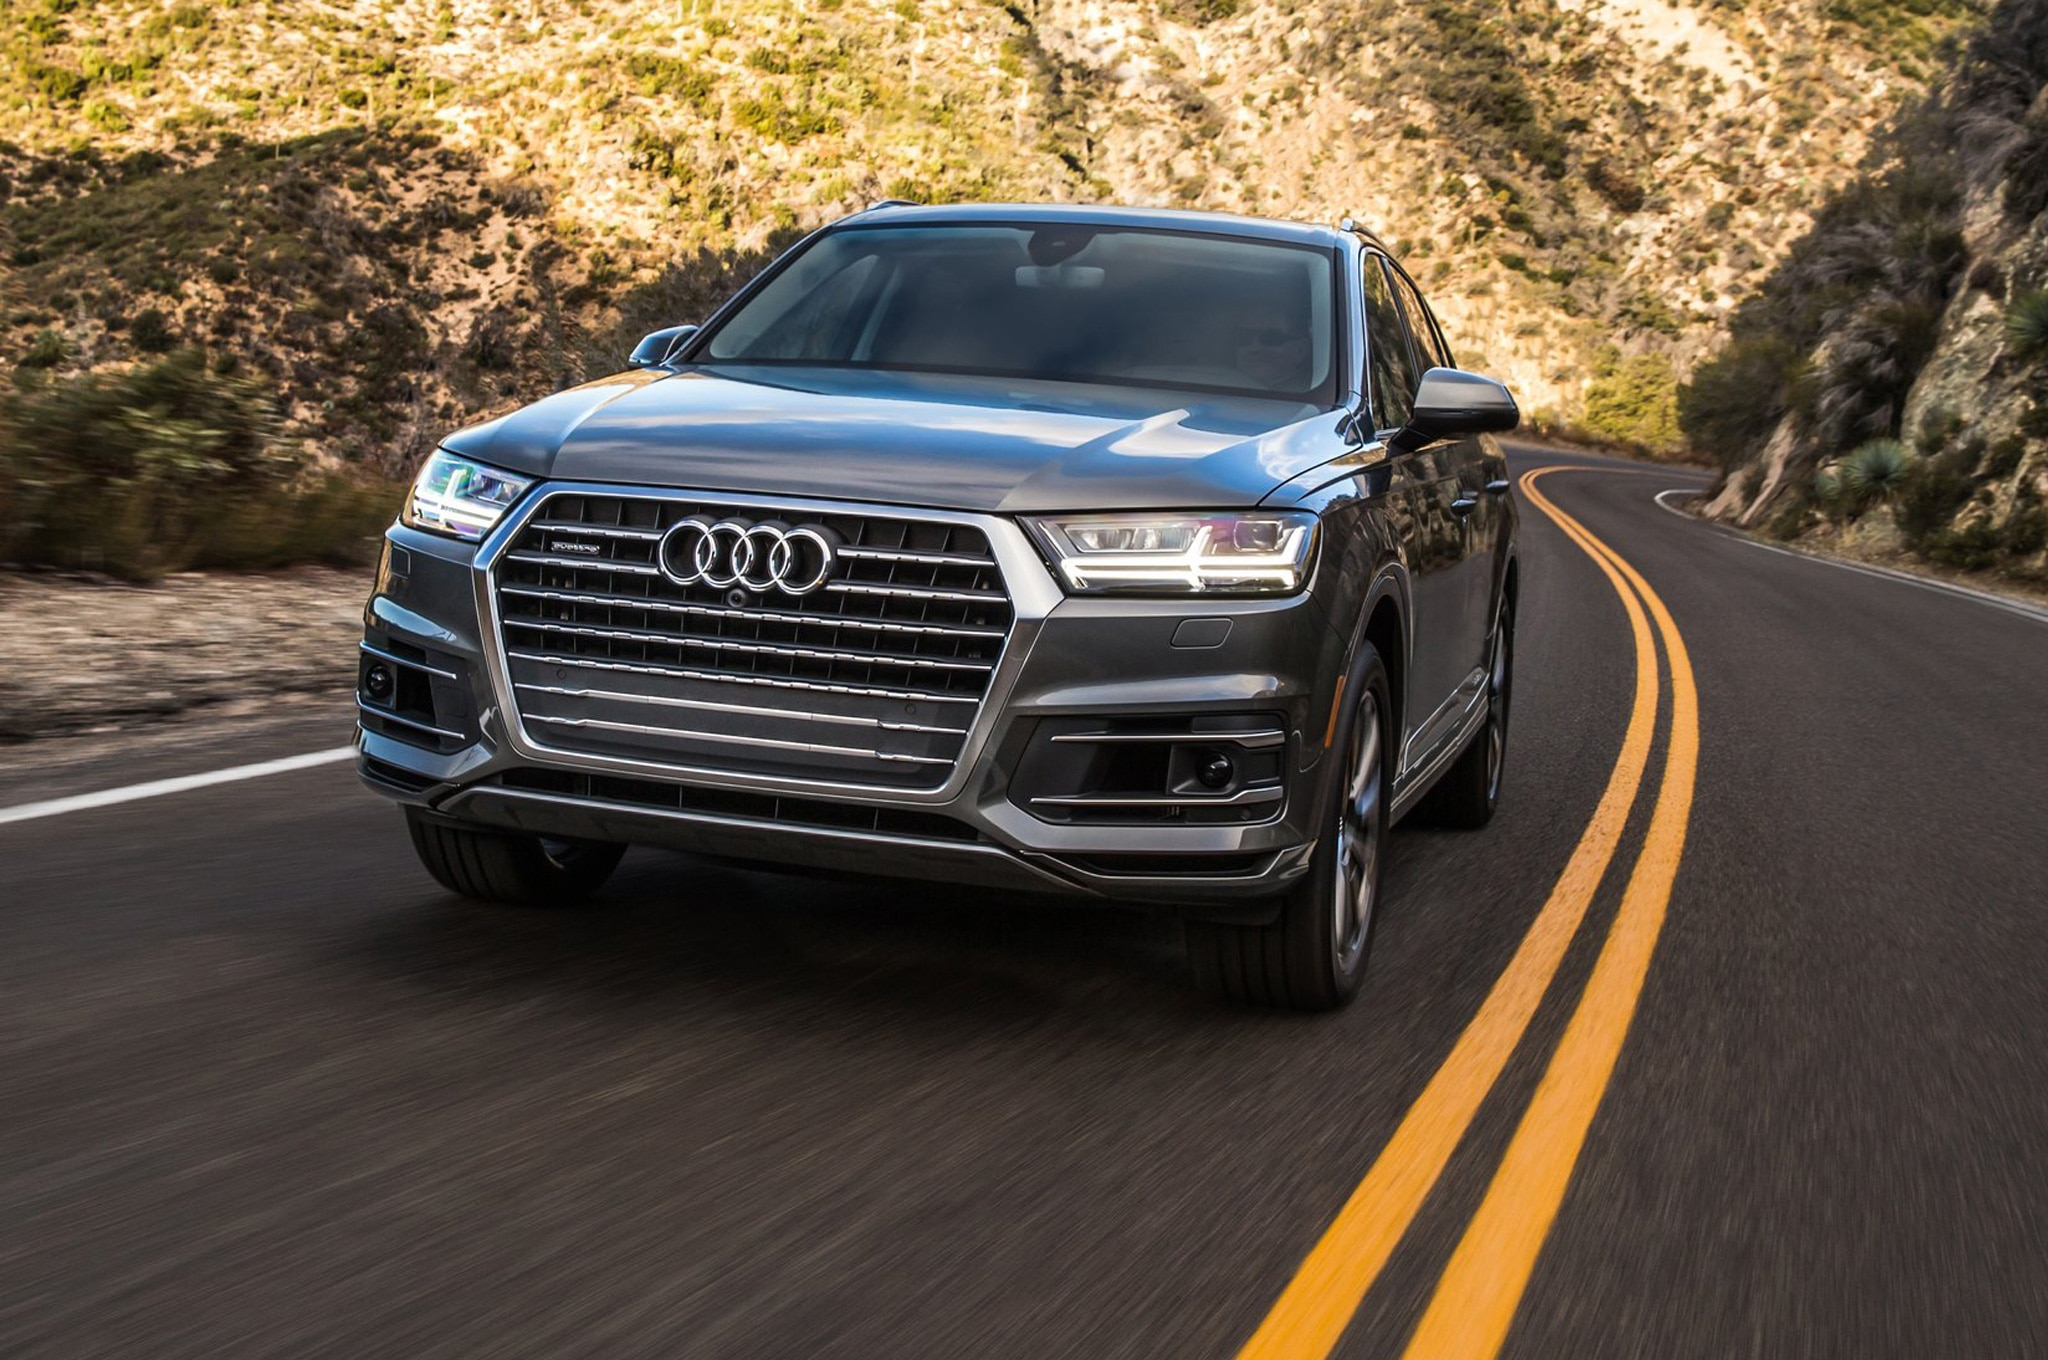 2017 Audi Q7 Front View In Motion 02